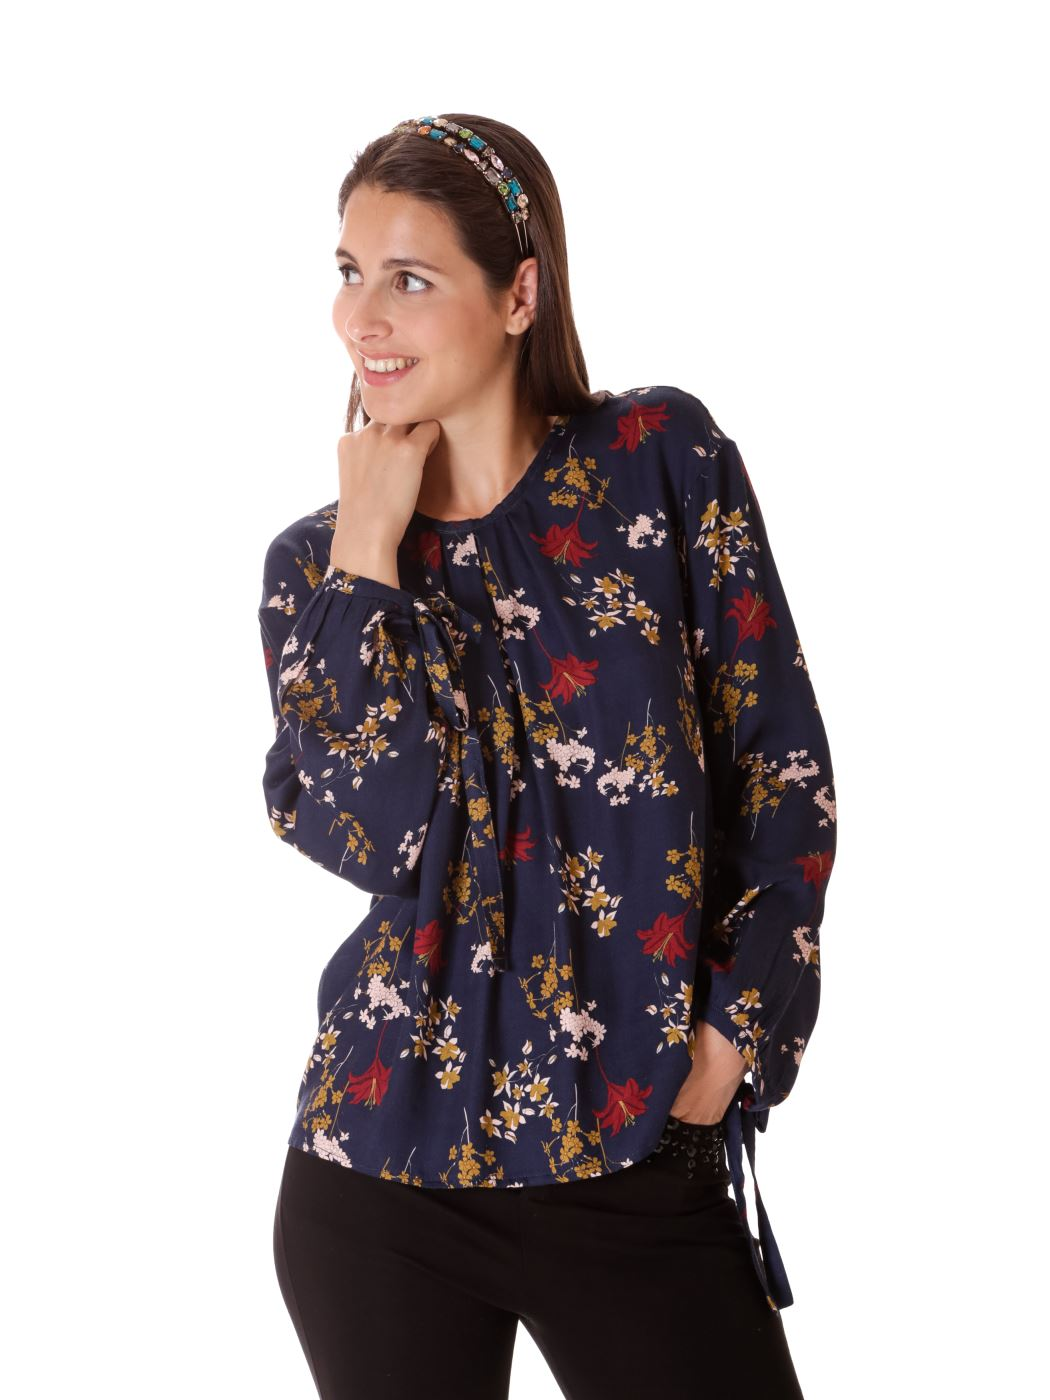 Blusa stampa floreale